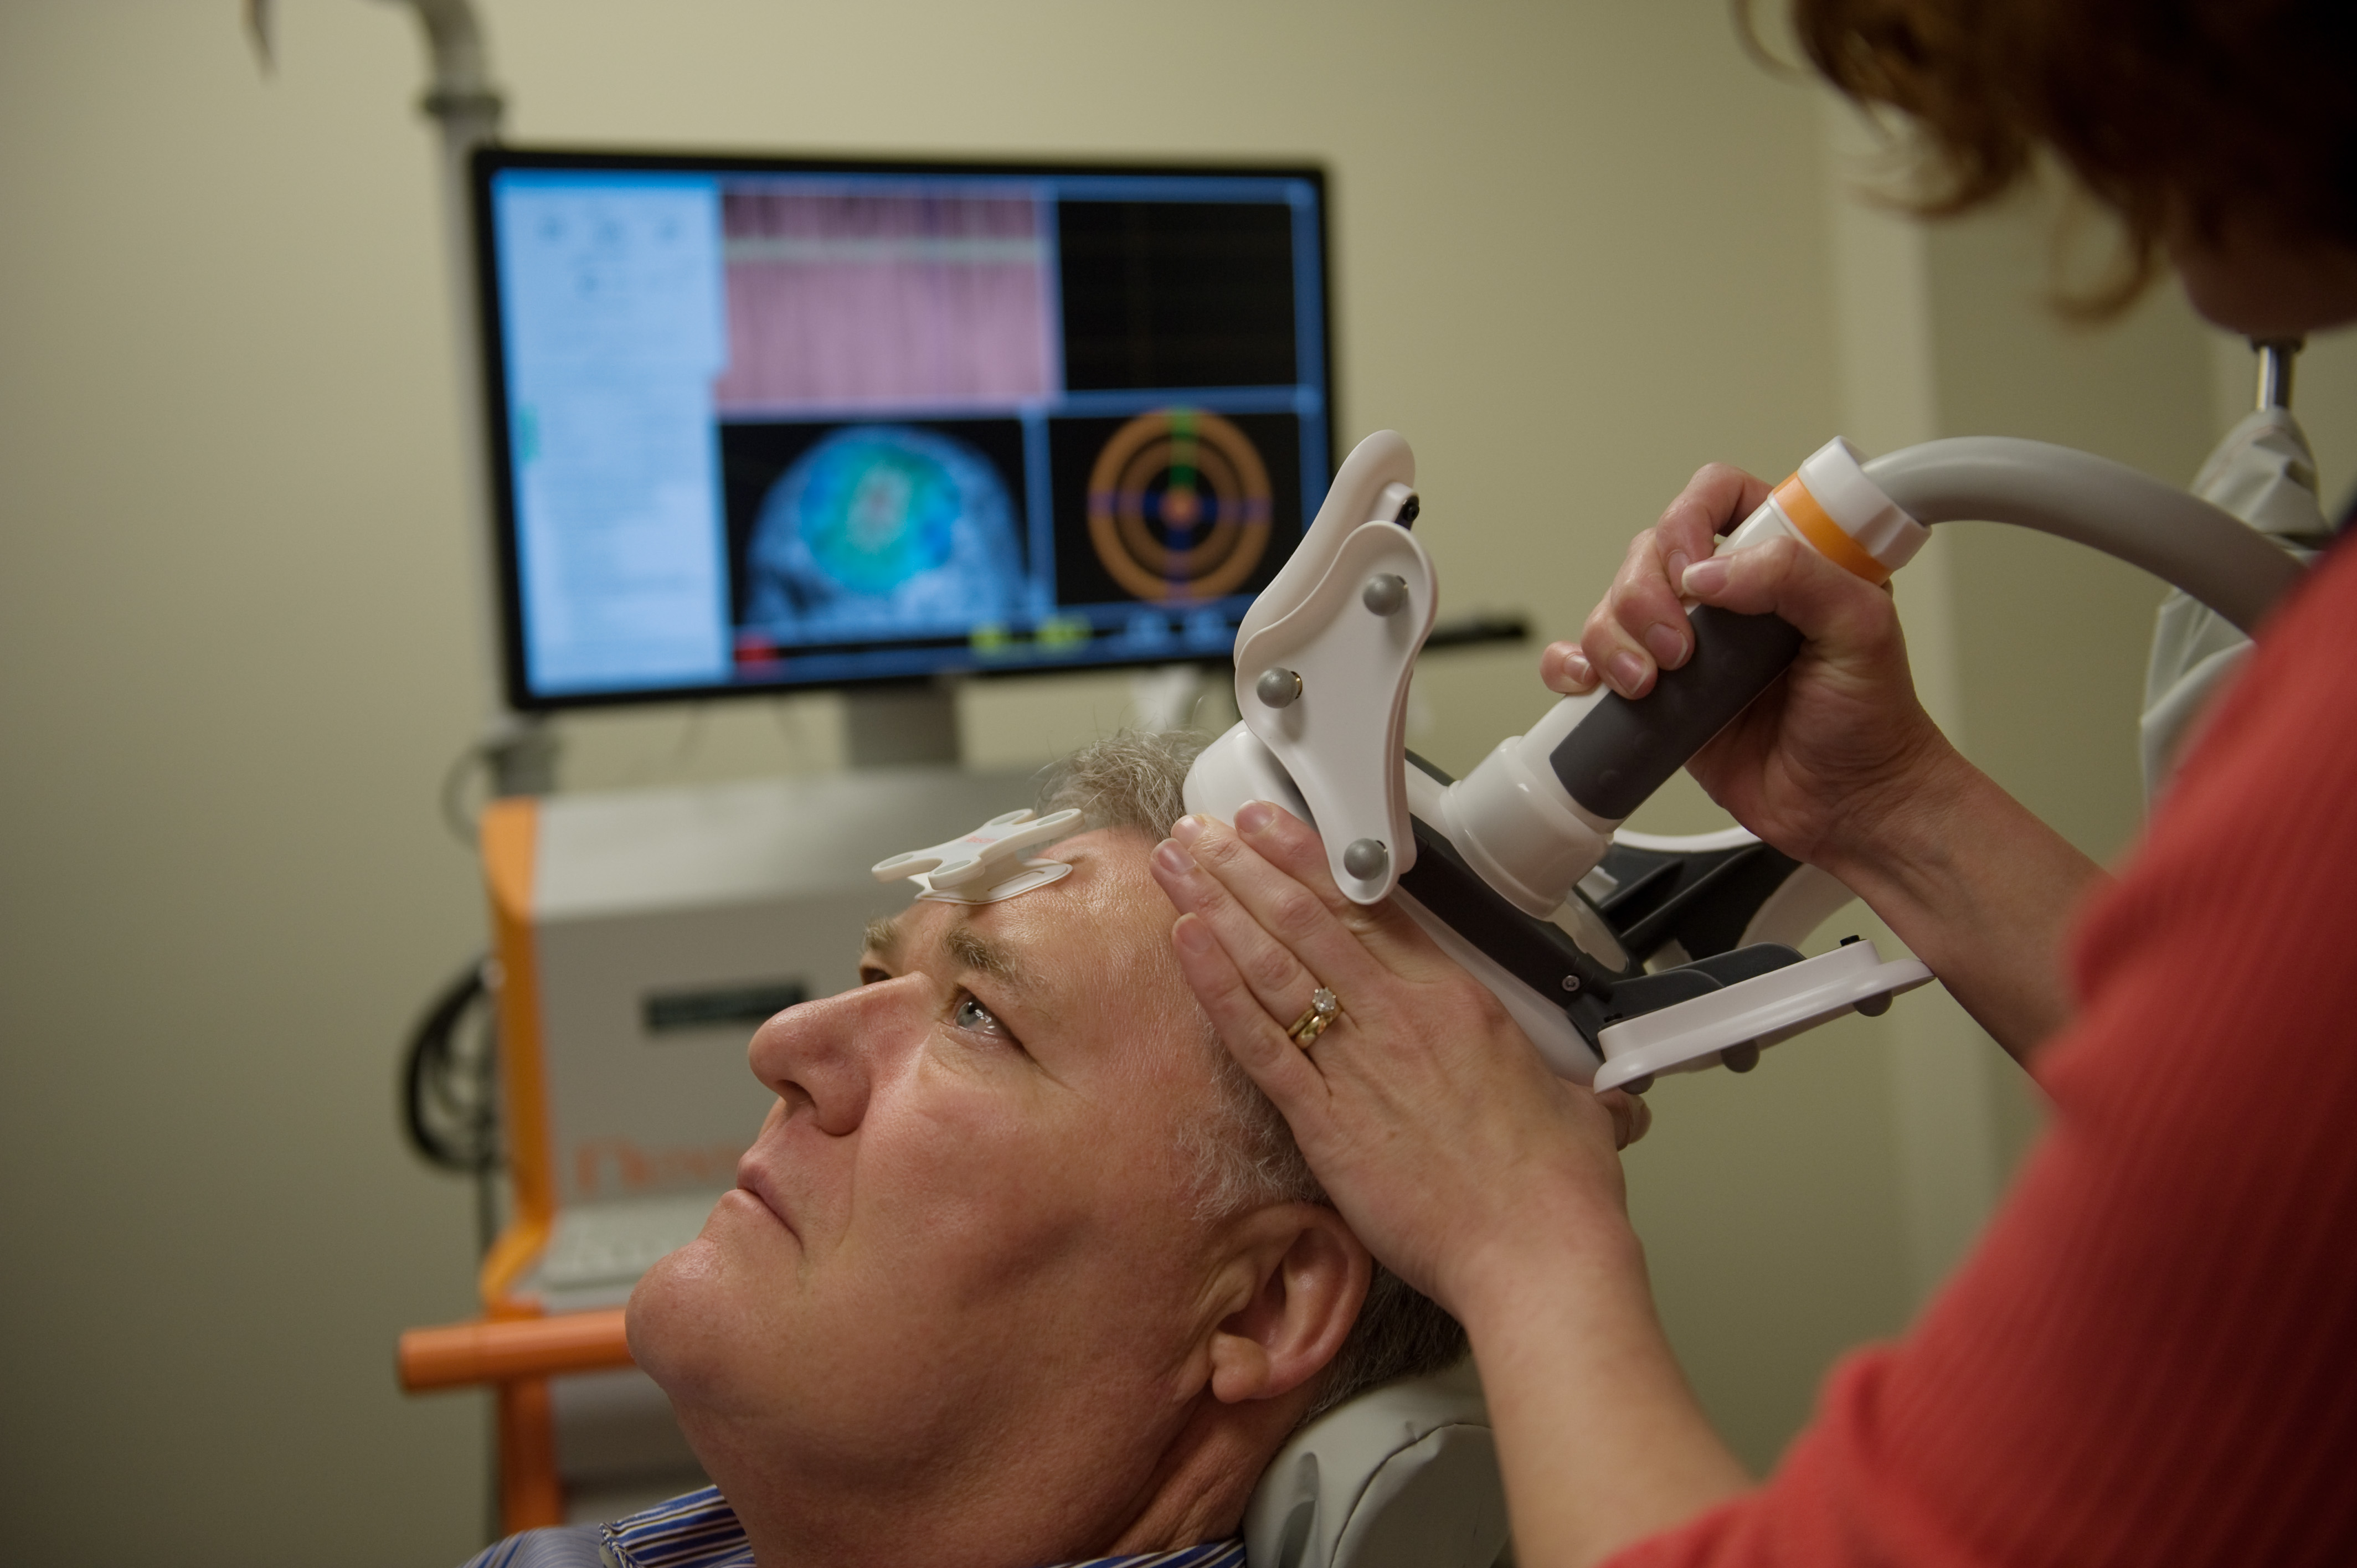 Clinical Trial Tests Possible Benefits of Brain Stimulation on